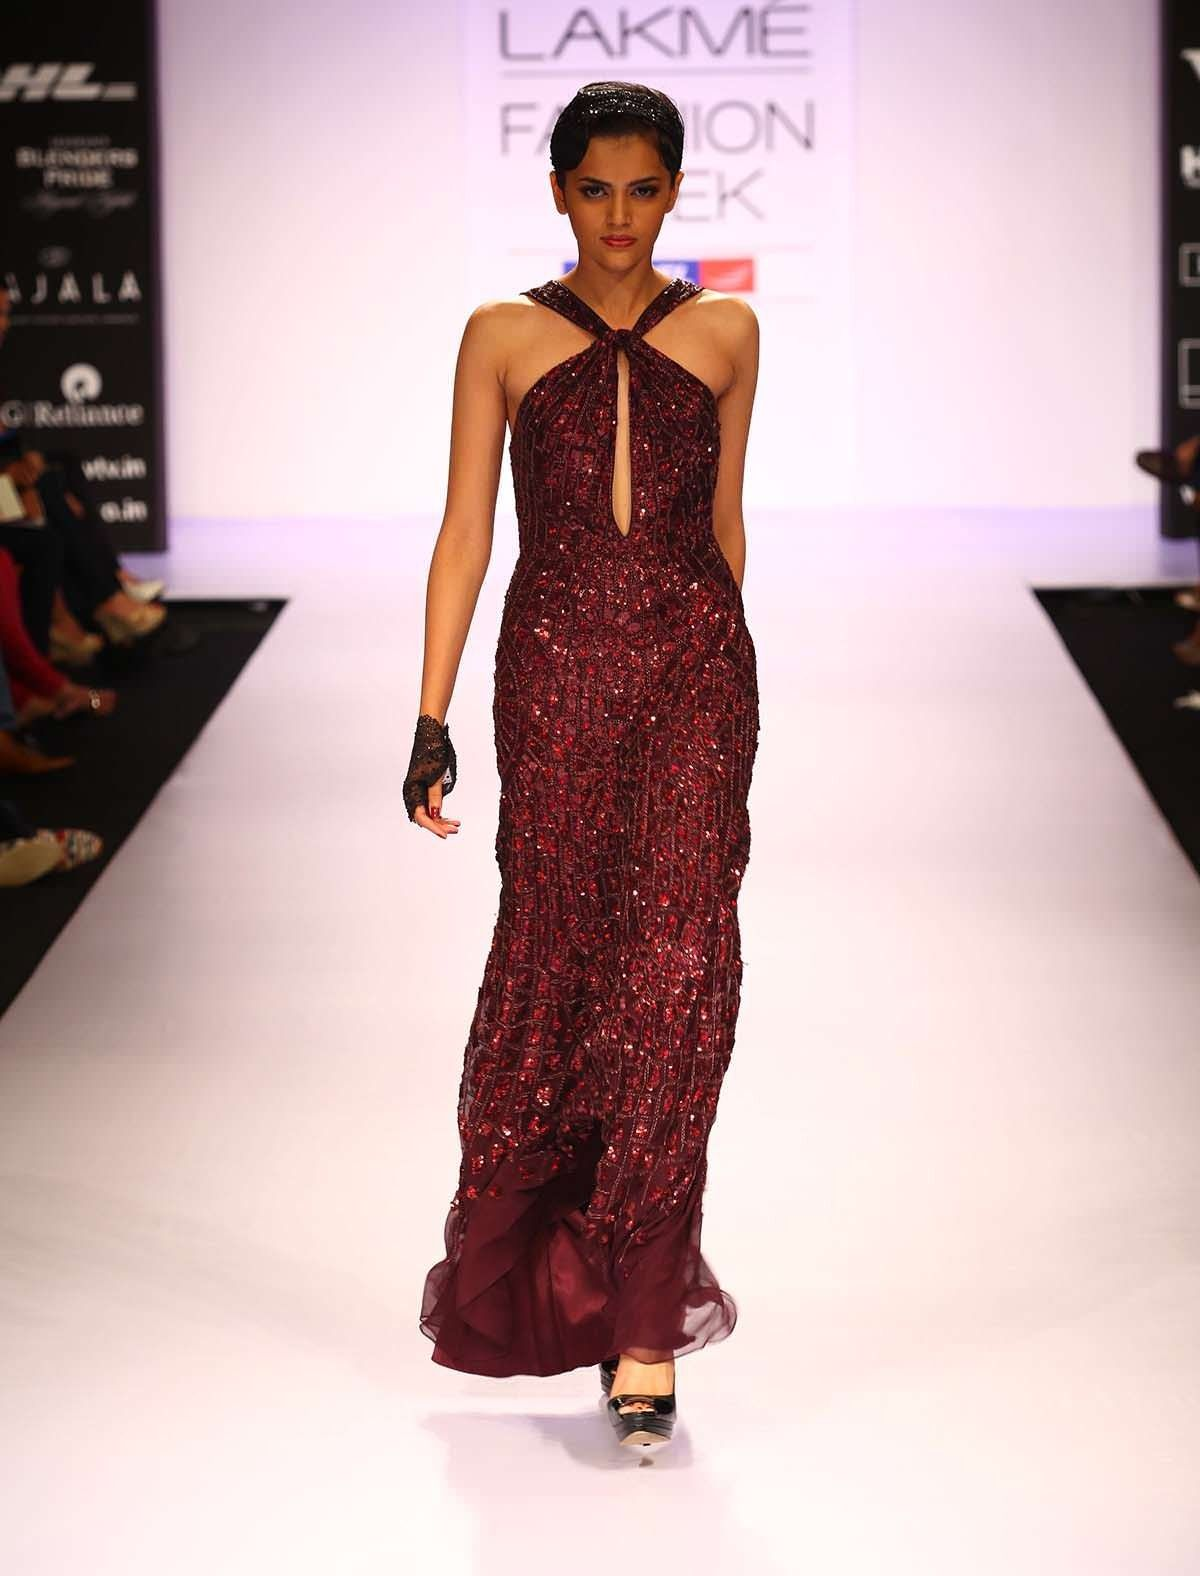 Komal sood glittering gown dream dresses pinterest gowns and